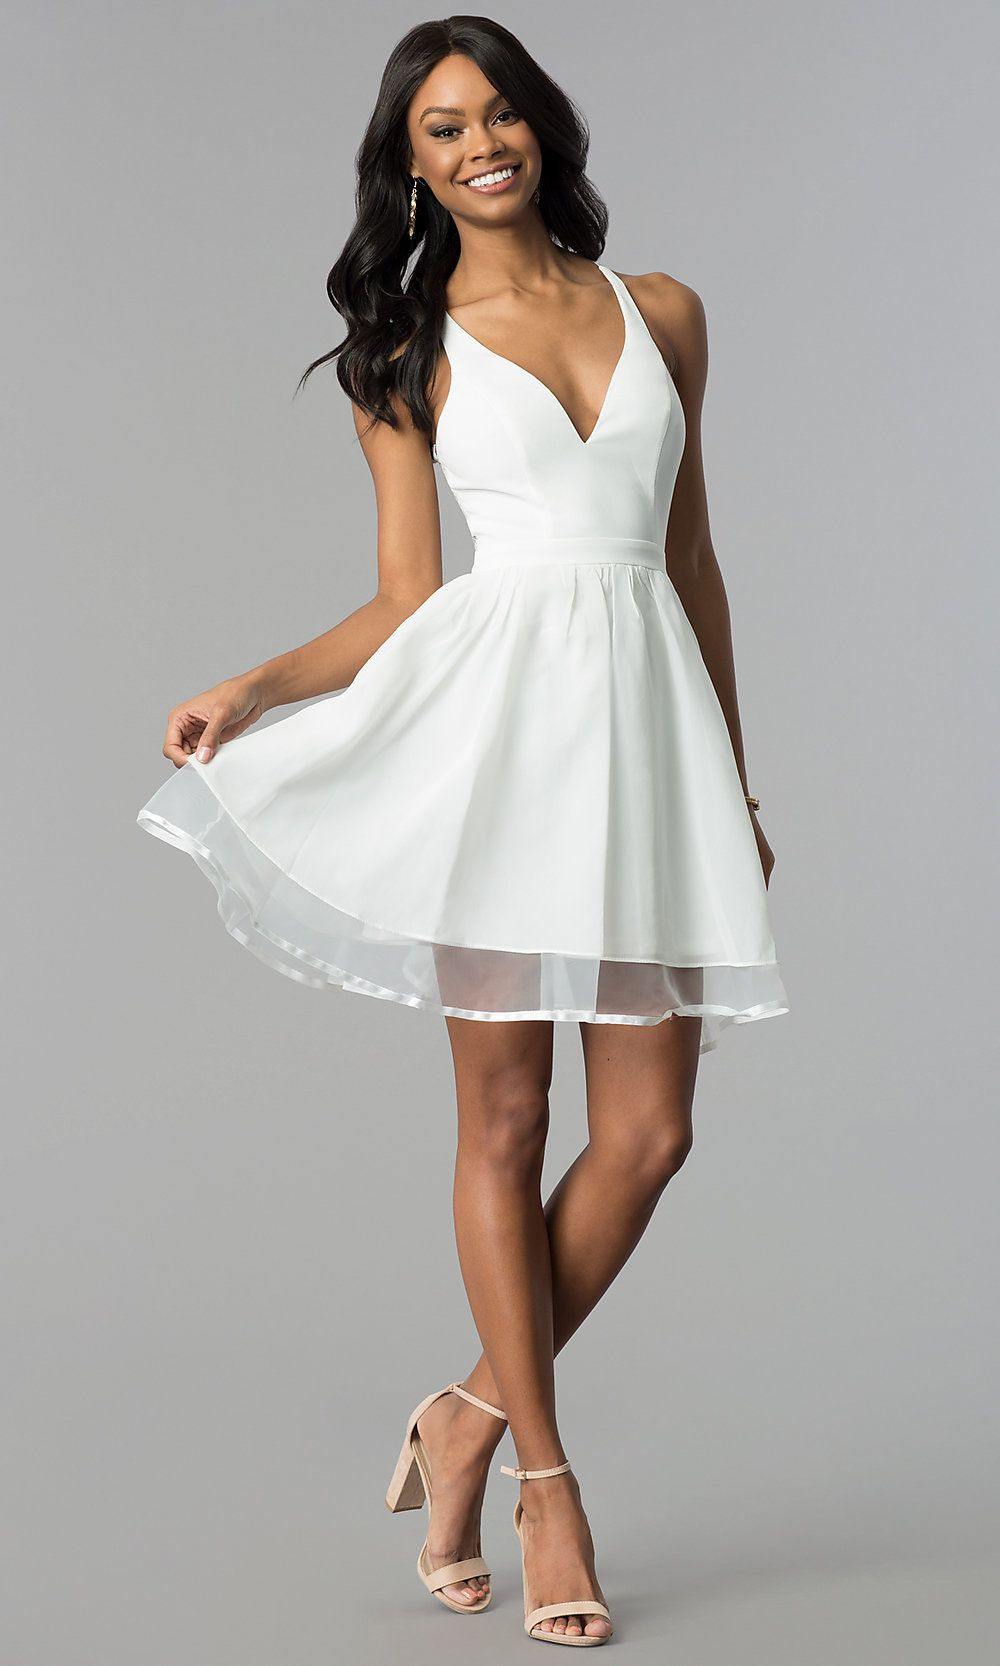 Short Ivory ALine Graduation Dress with Lace Back - White dresses graduation, White dress short formal, White short dress, Graduation party dresses, Graduation dress, Dresses - Make your mark in this ivory white graduation party dress  A modern touch elevates the classic silhouette of this ivory aline party dress  The vneck bodice features a sporty racerback made feminine by sheer floral lace  This adorable ivory grad dress has a short flared skirt that gathers at the banded waistline and features a visually pleasing sheer panel that extends the length  Be onpoint and get high marks for style wearing this ivory white laceback graduation party dress